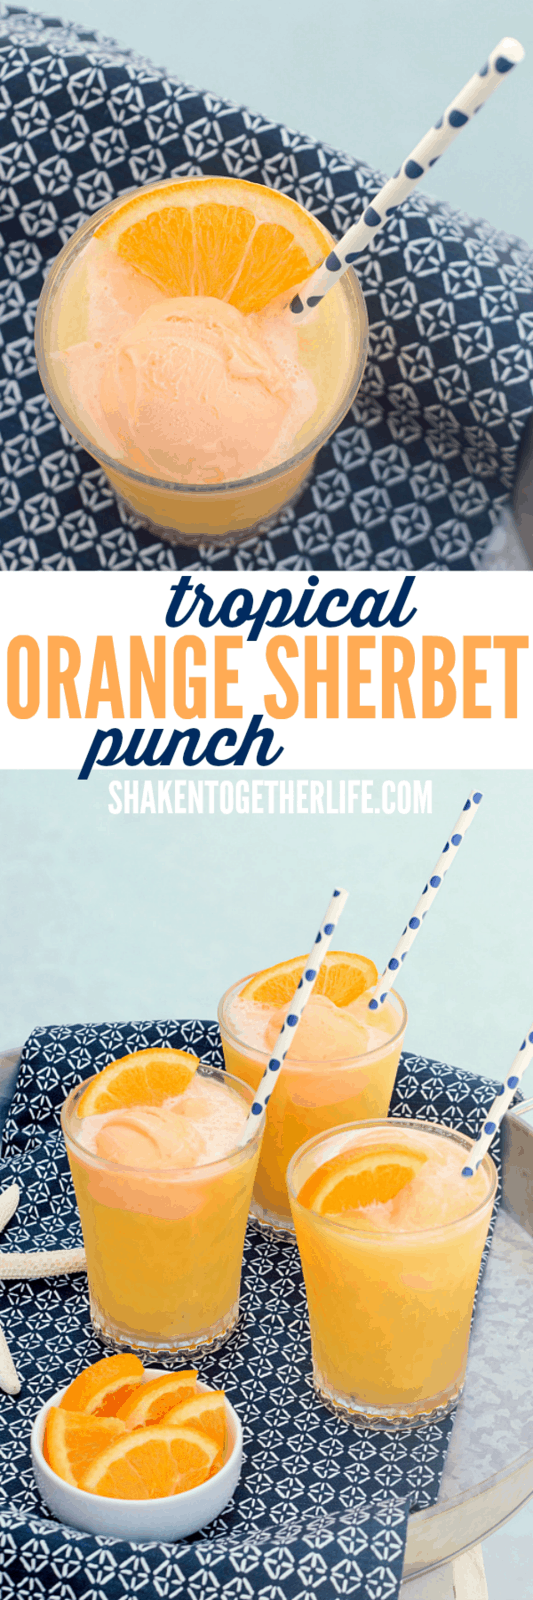 Tropical Orange Sherbet Punch is on repeat this Summer! Tropical fruit juices, lemon lime soda and scoops of orange sherbet make this punch a family favorite!